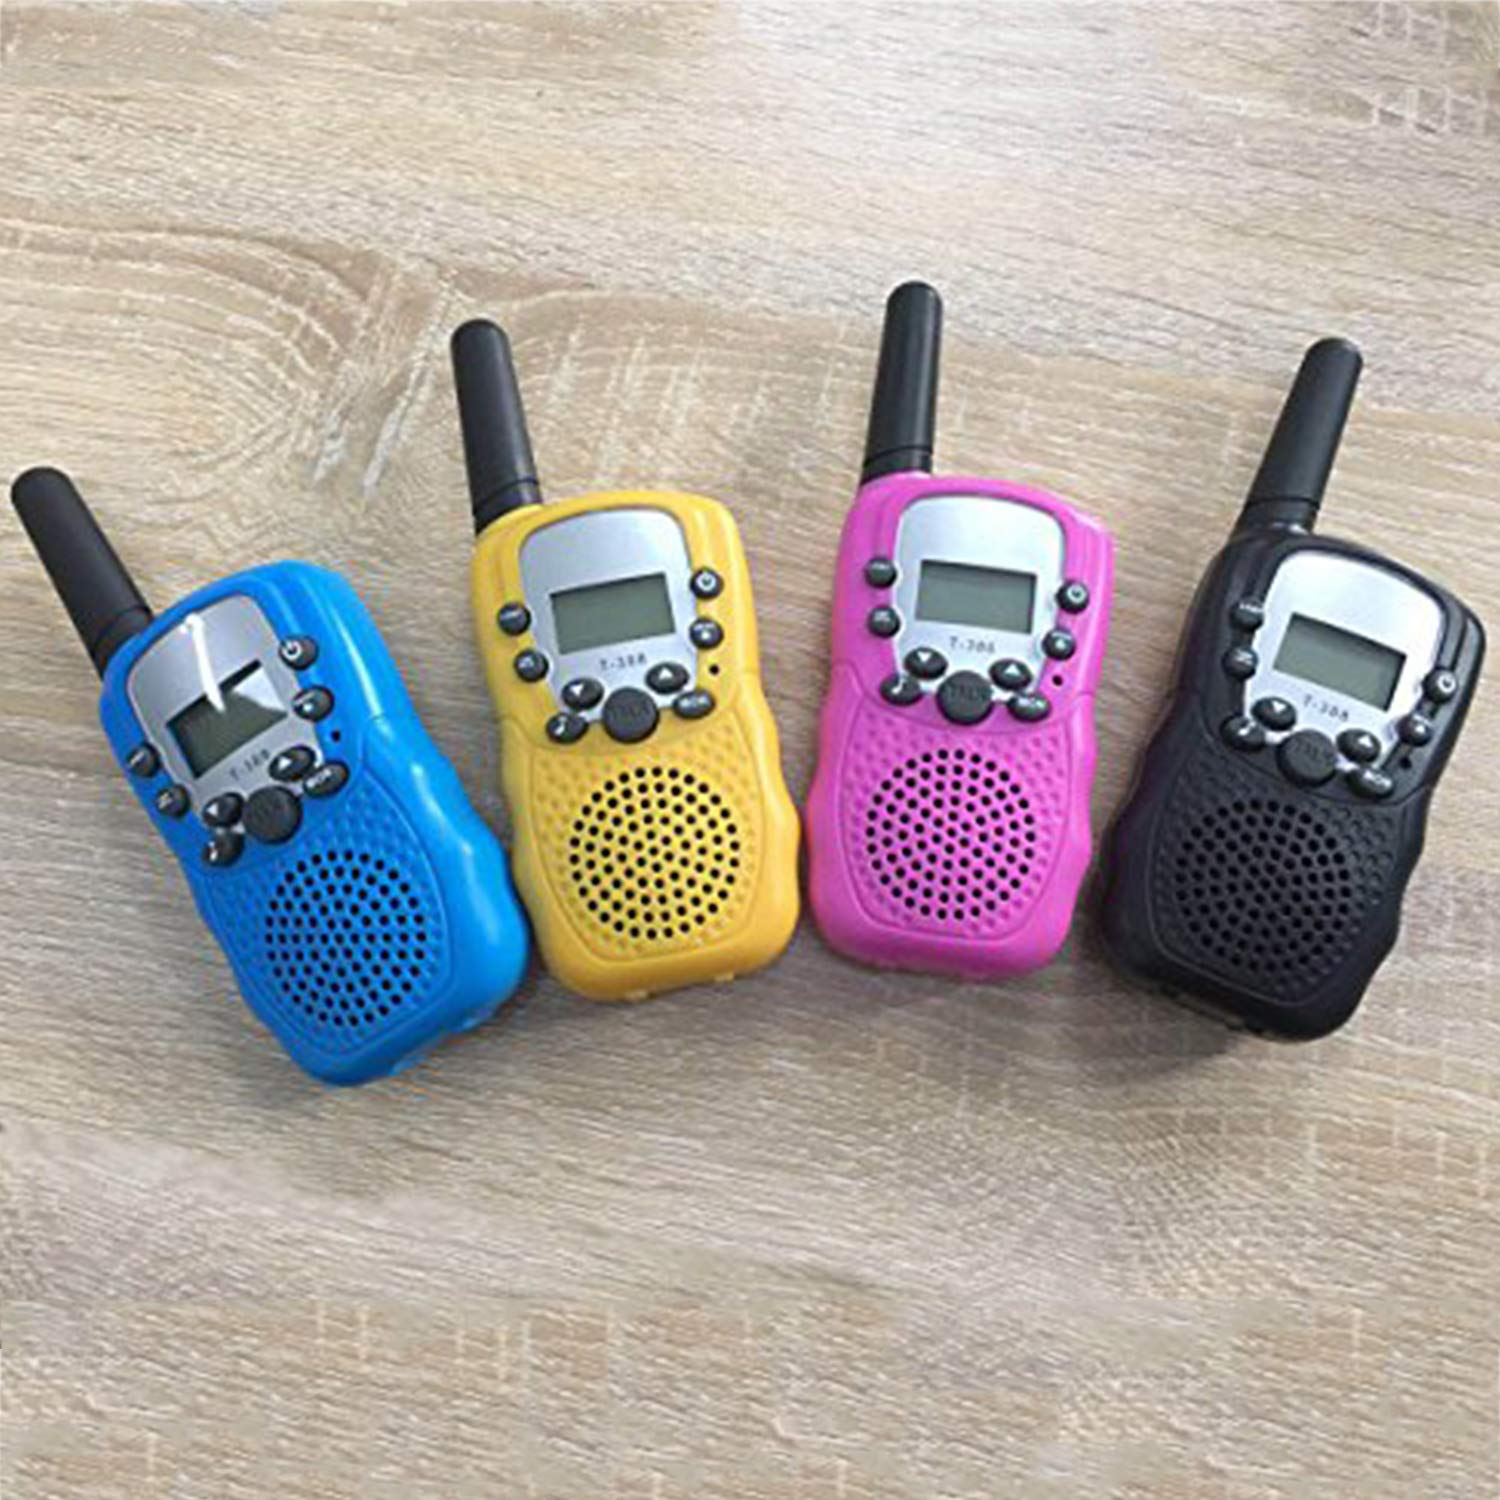 4Pack Kids Walkie Talkie Girls Boys Long Range Two Way Radio 22 Channel LED Flashlight Marine Cruise FRS Camping Accessories Toys Hiking Family Games Outdoor Holiday Birthday Gifts [SUPER CUT] by iGeeKid (Image #7)